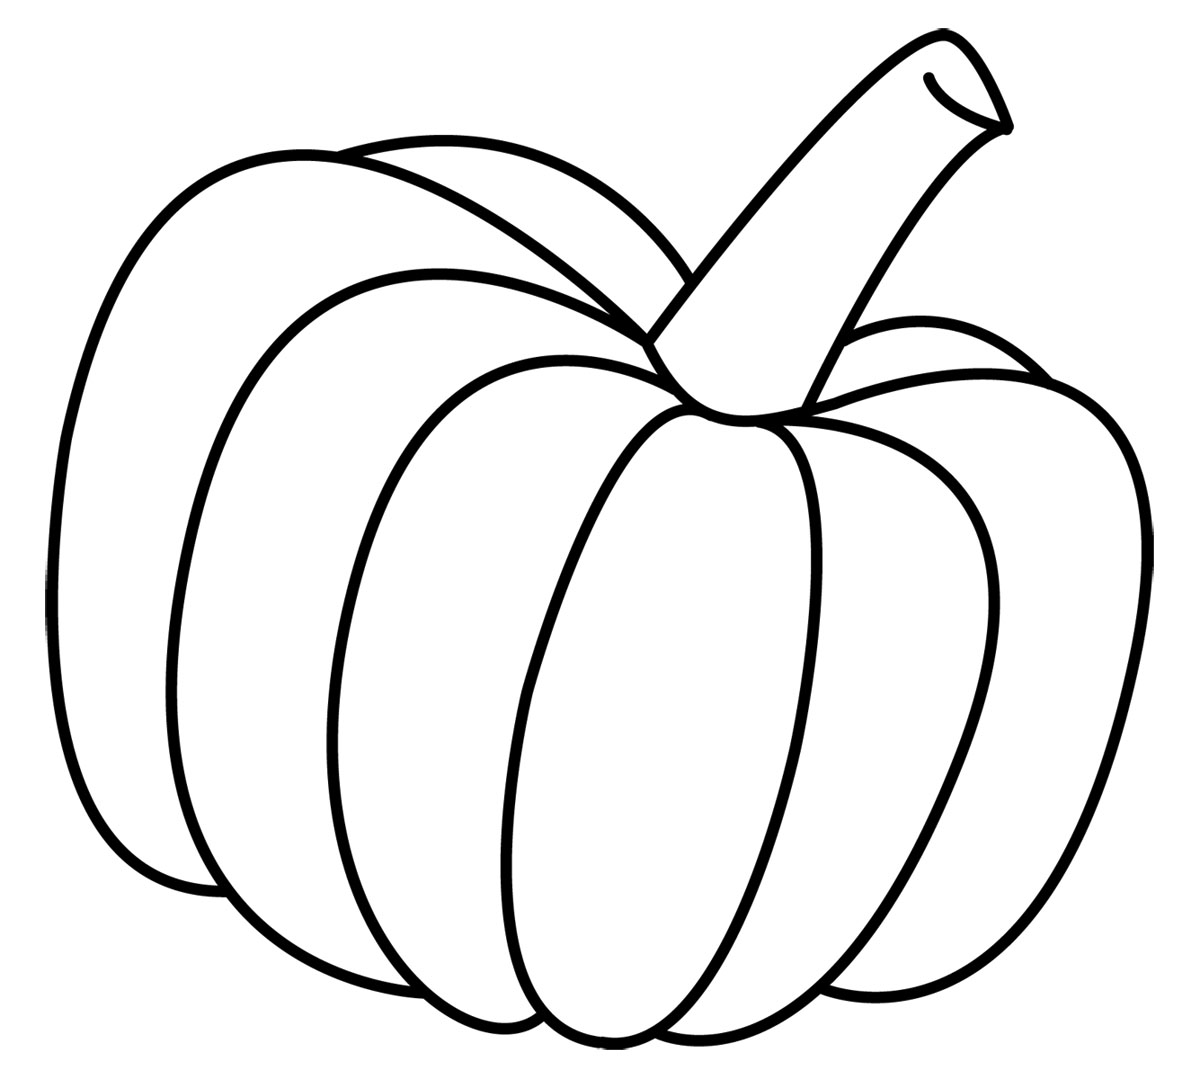 outline for coloring coloring page outline of cartoon fluffy cat for kids stock for outline coloring